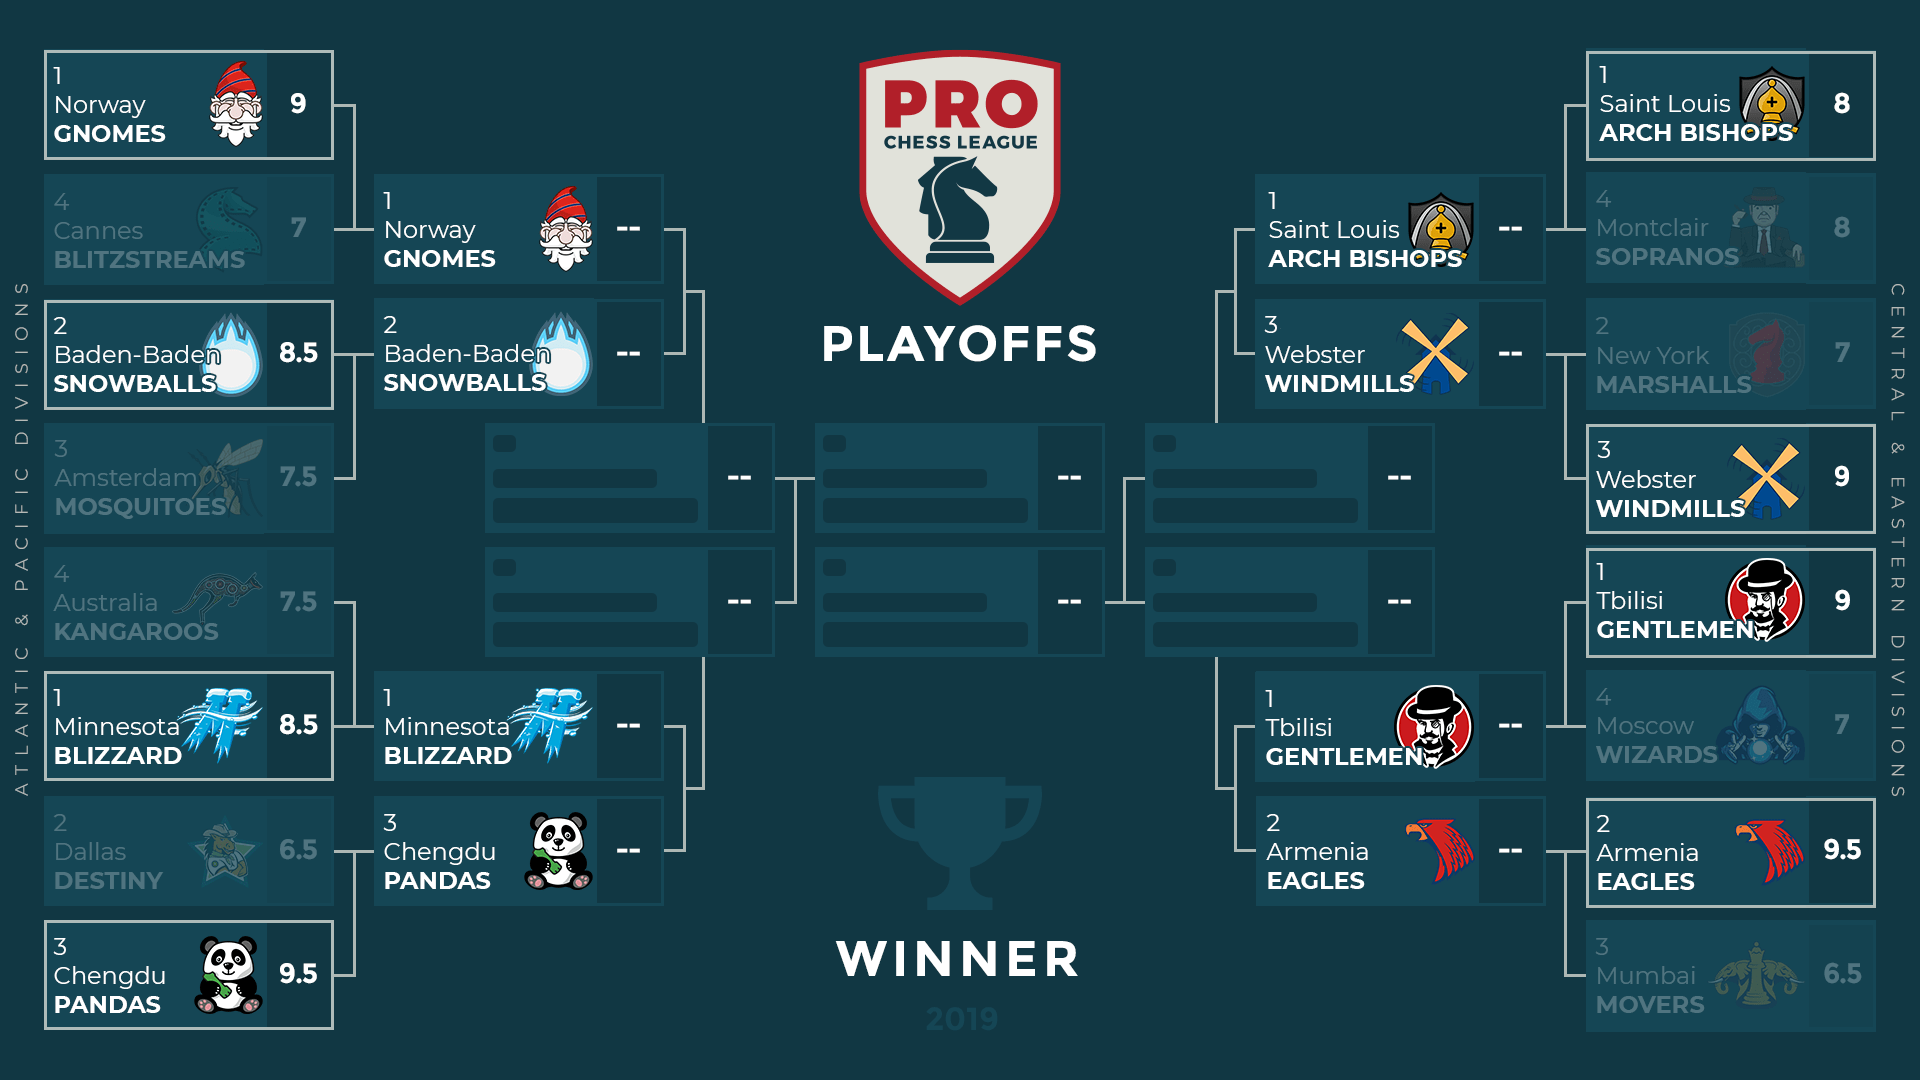 First PRO Chess League Quarterfinals On Tuesday